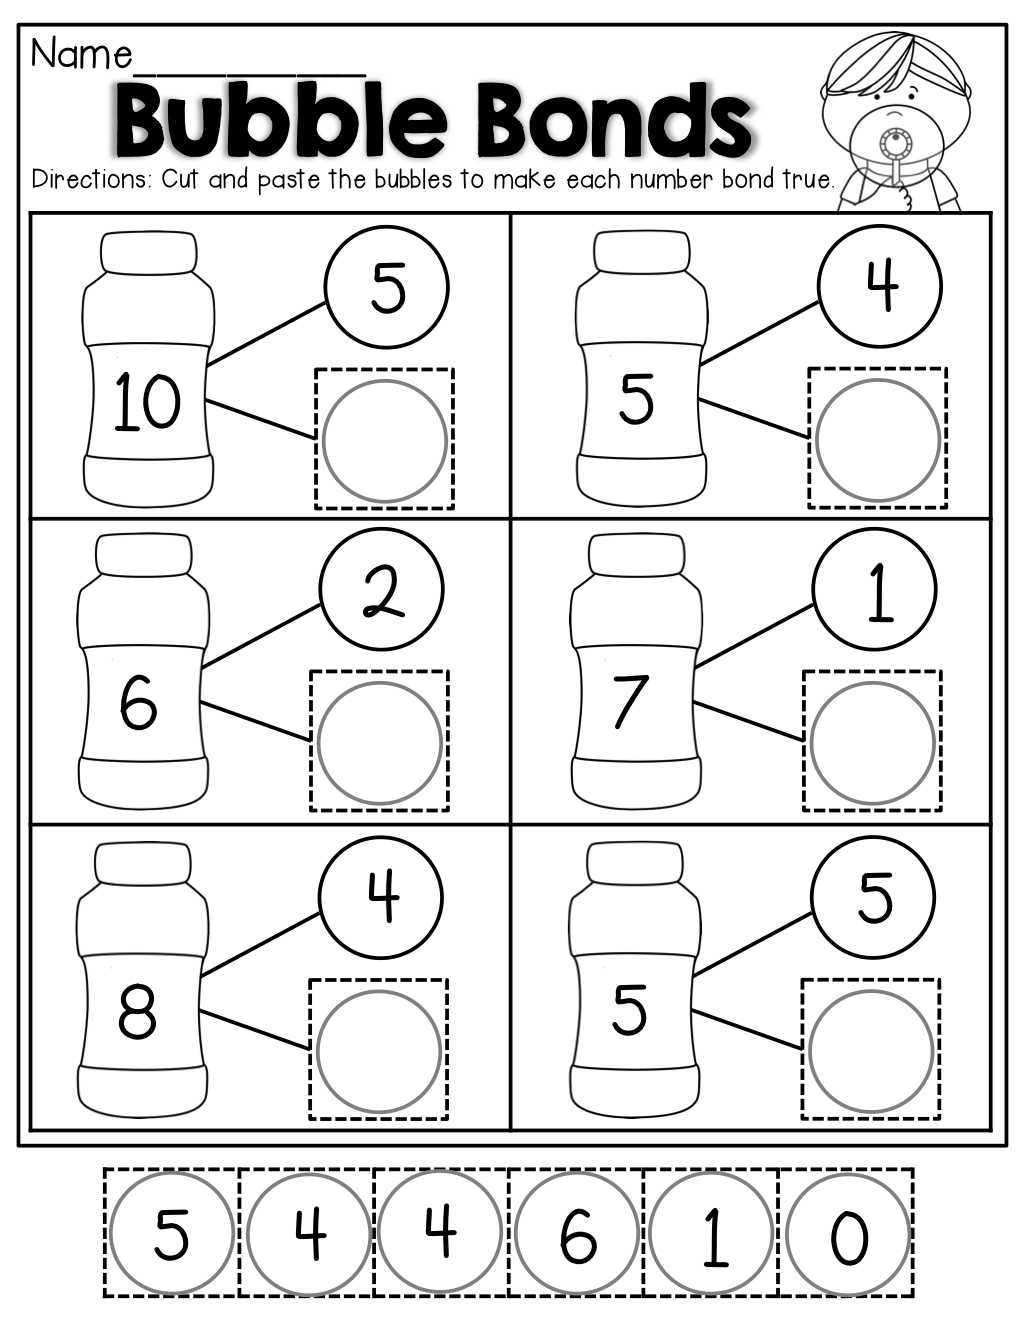 Number Bubble Bonds (Cut And Paste) | Kindergarten Activities - Free Printable Number Bonds Worksheets For Kindergarten